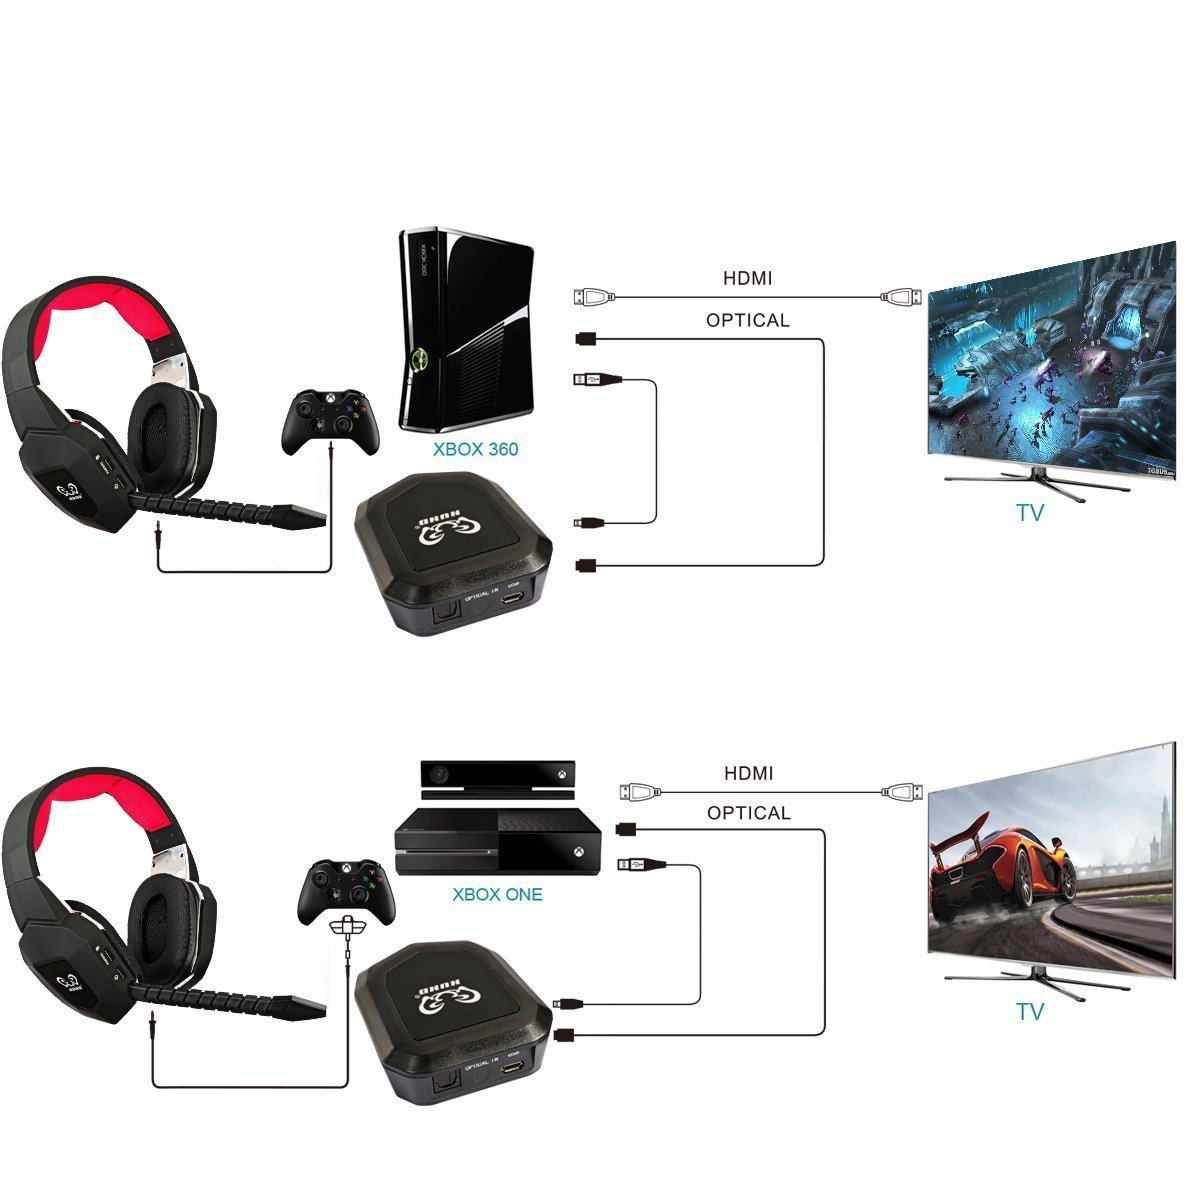 [Regalo] HAMSWAN Auriculares Gaming Inalambricos 2.4 Ghz Diadema Especial Para Xbox 360/ Xbox One/ PS3/ PS4/ PC/TV Cascos Estéreo Consola Gaming ...